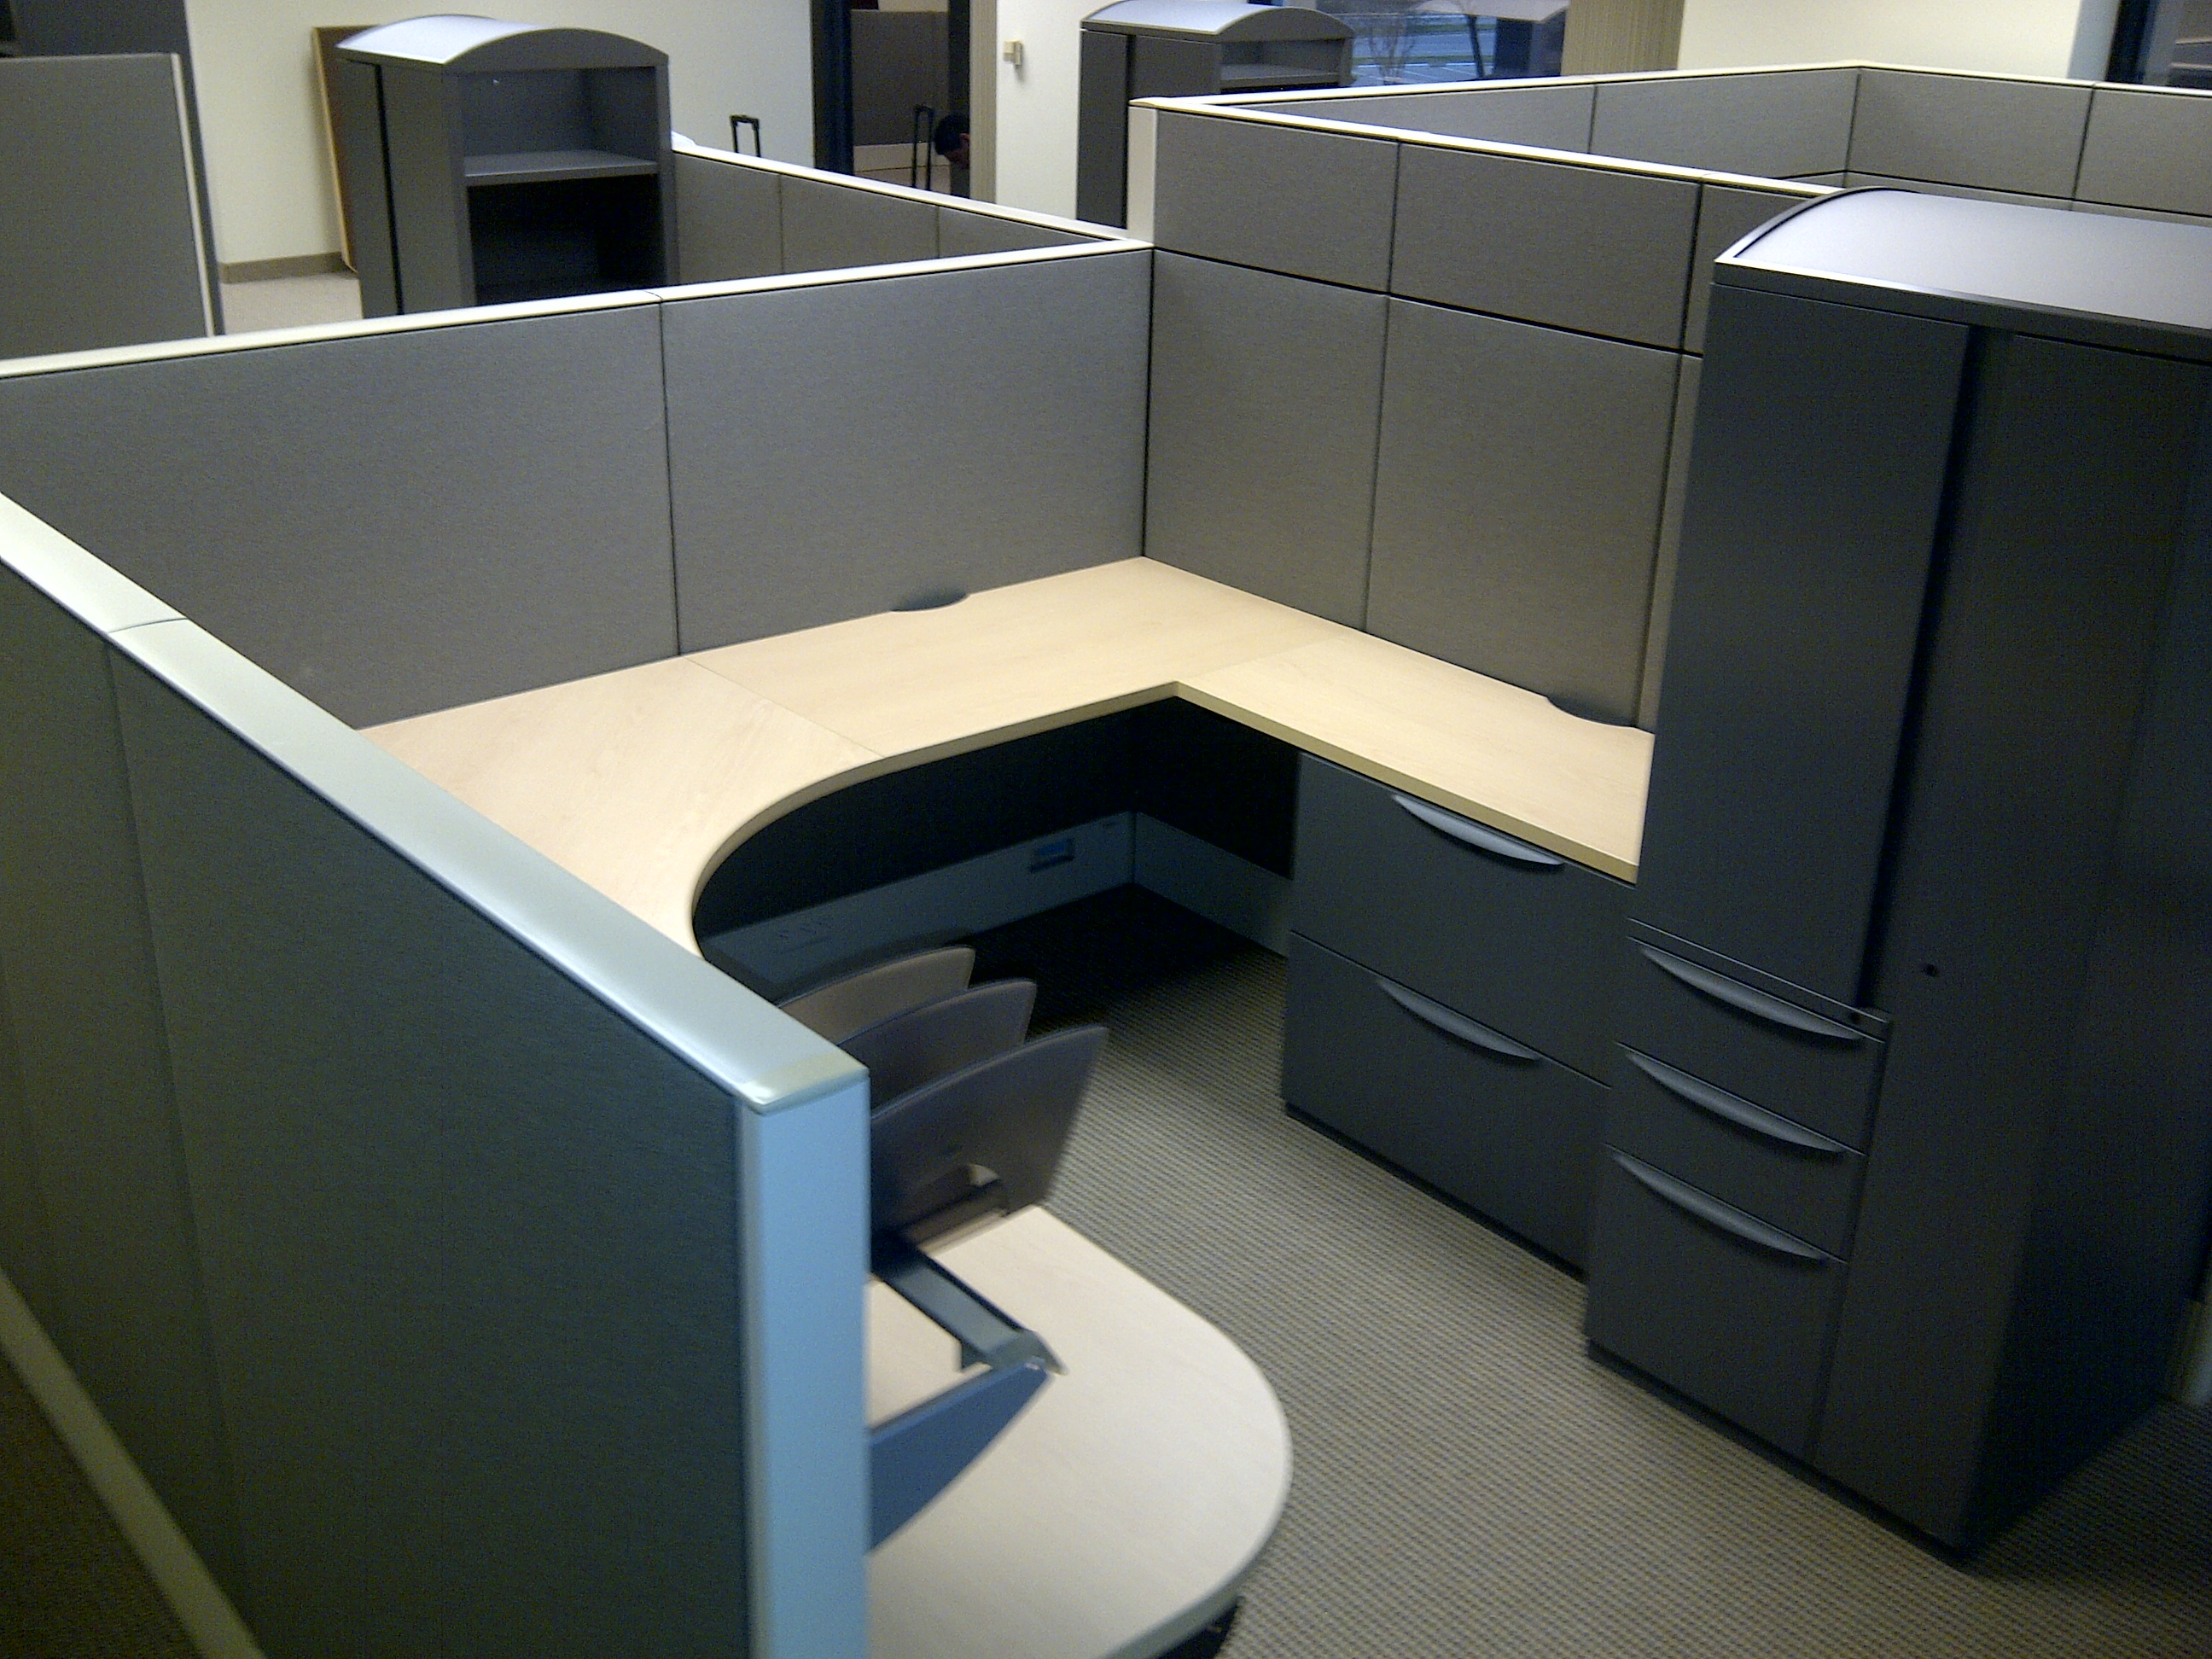 HAWORTH Premise 'Enhanced' 4-Workstation Cluster 3580.00   + InYourOffice gives you (4) Mesh Task Chairs FREE!